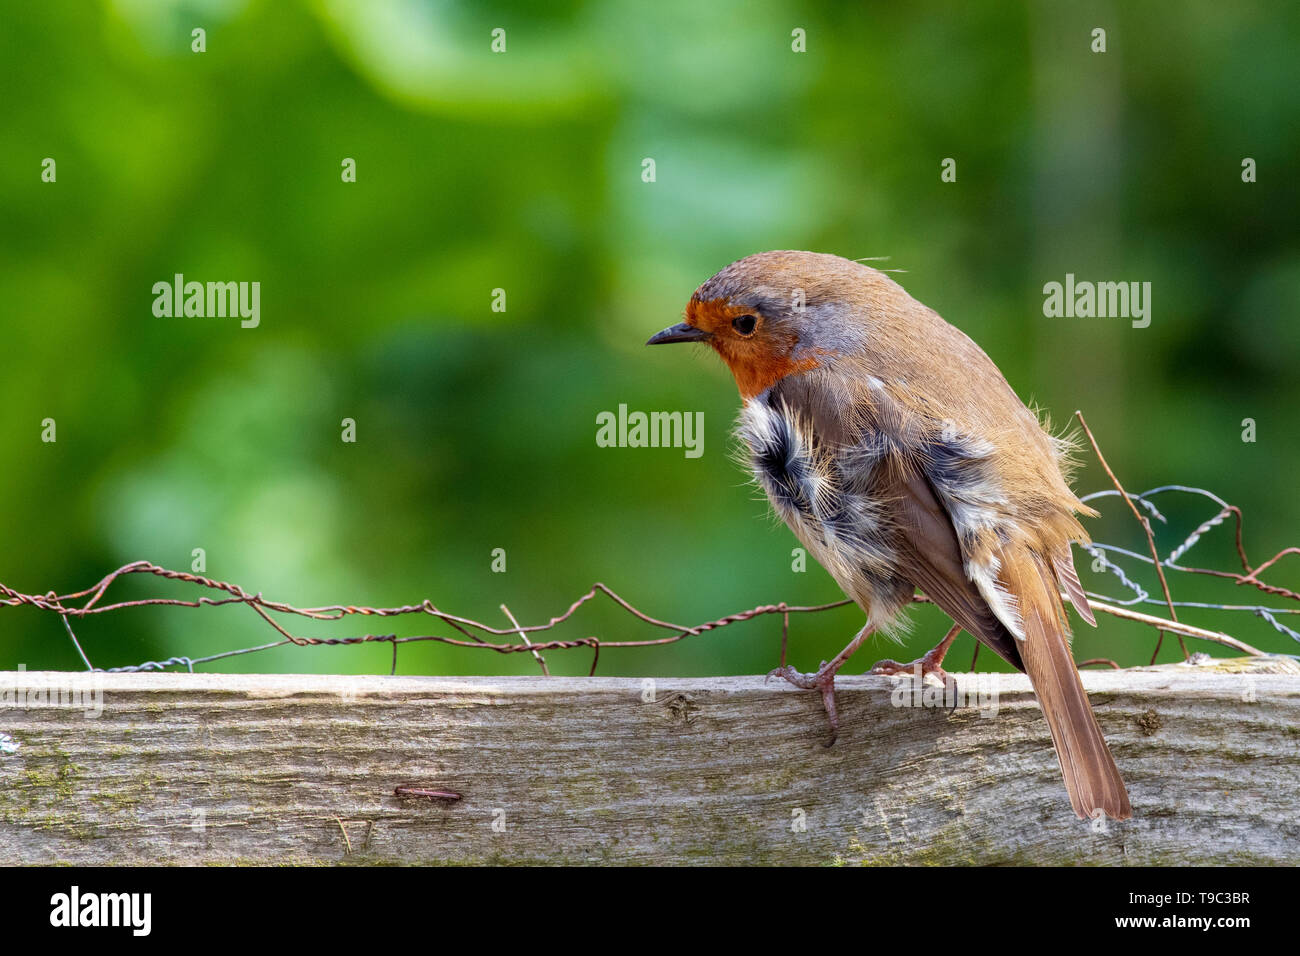 Robin standing on fence in the wind - Stock Image